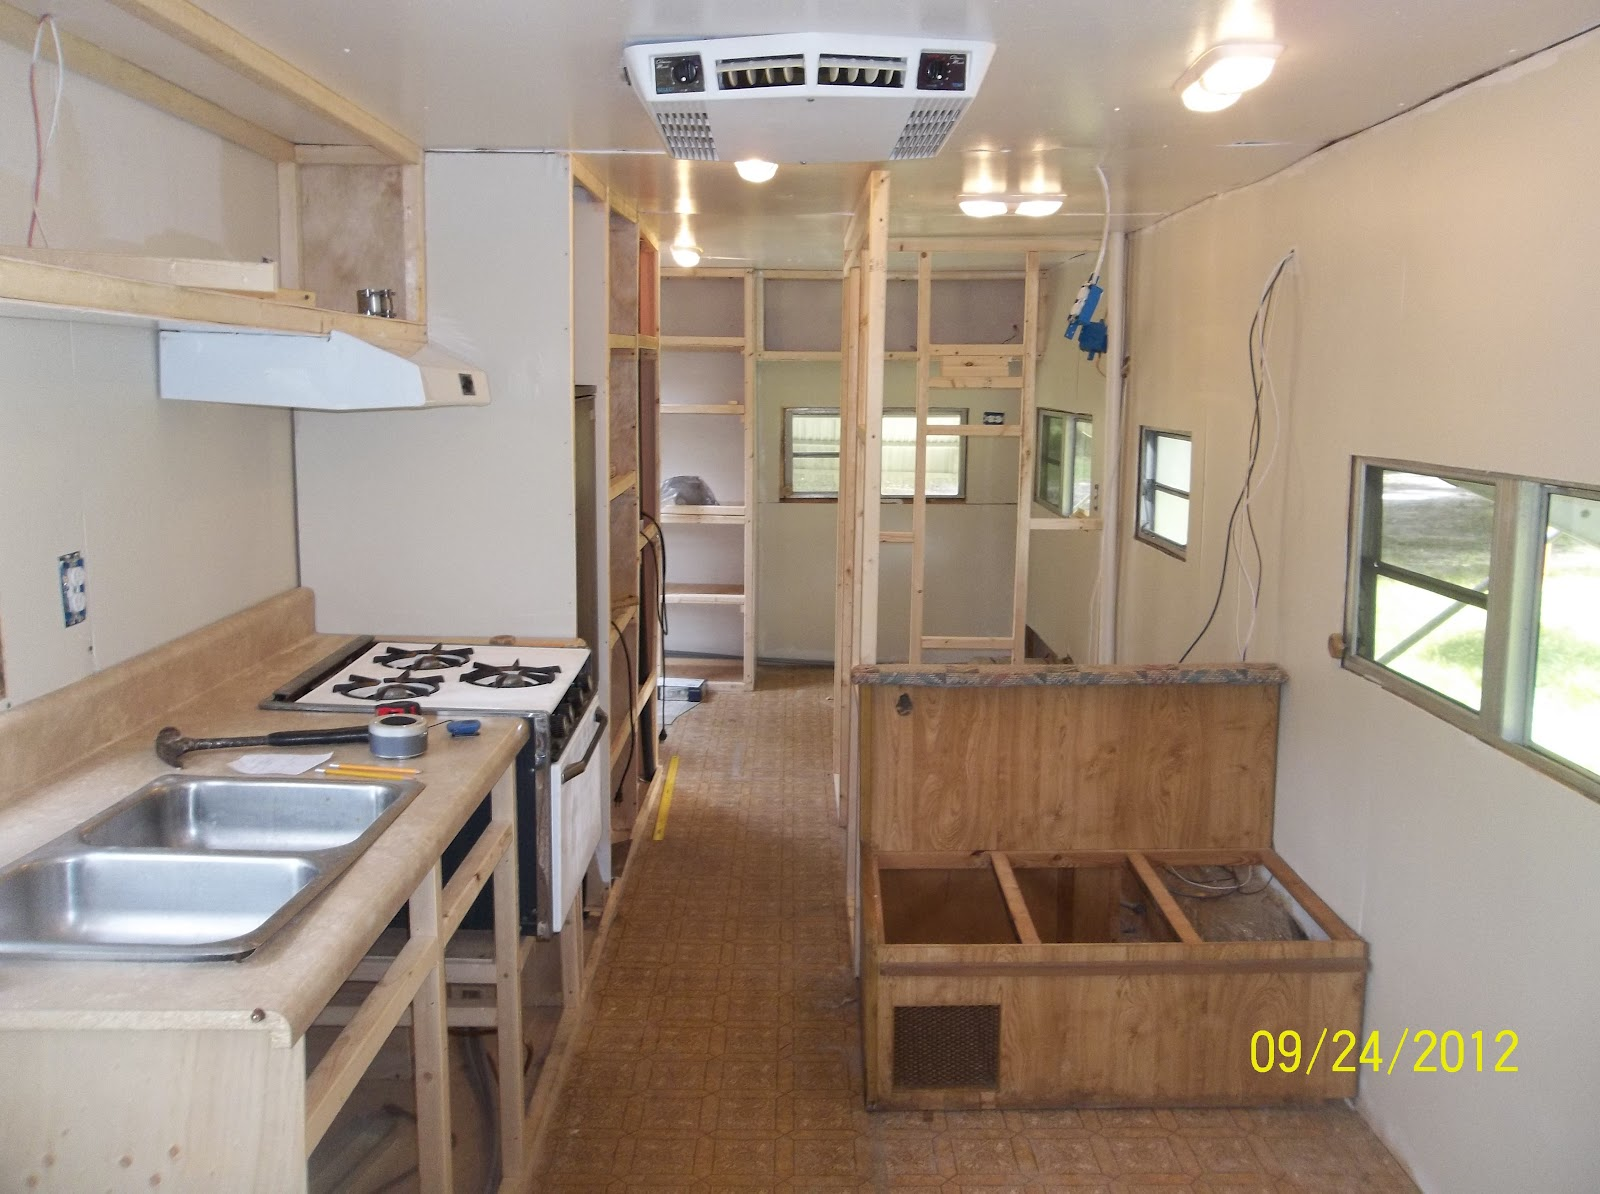 trailer redo small kitchen ideas html with Rv Remodeling Ideas on C er Remodels further 20287ba6438ebe87 besides Travel Trailer Remodel Reveal furthermore Rv Remodeling Ideas together with Our 5th Wheel Rv Renovation Reveal.